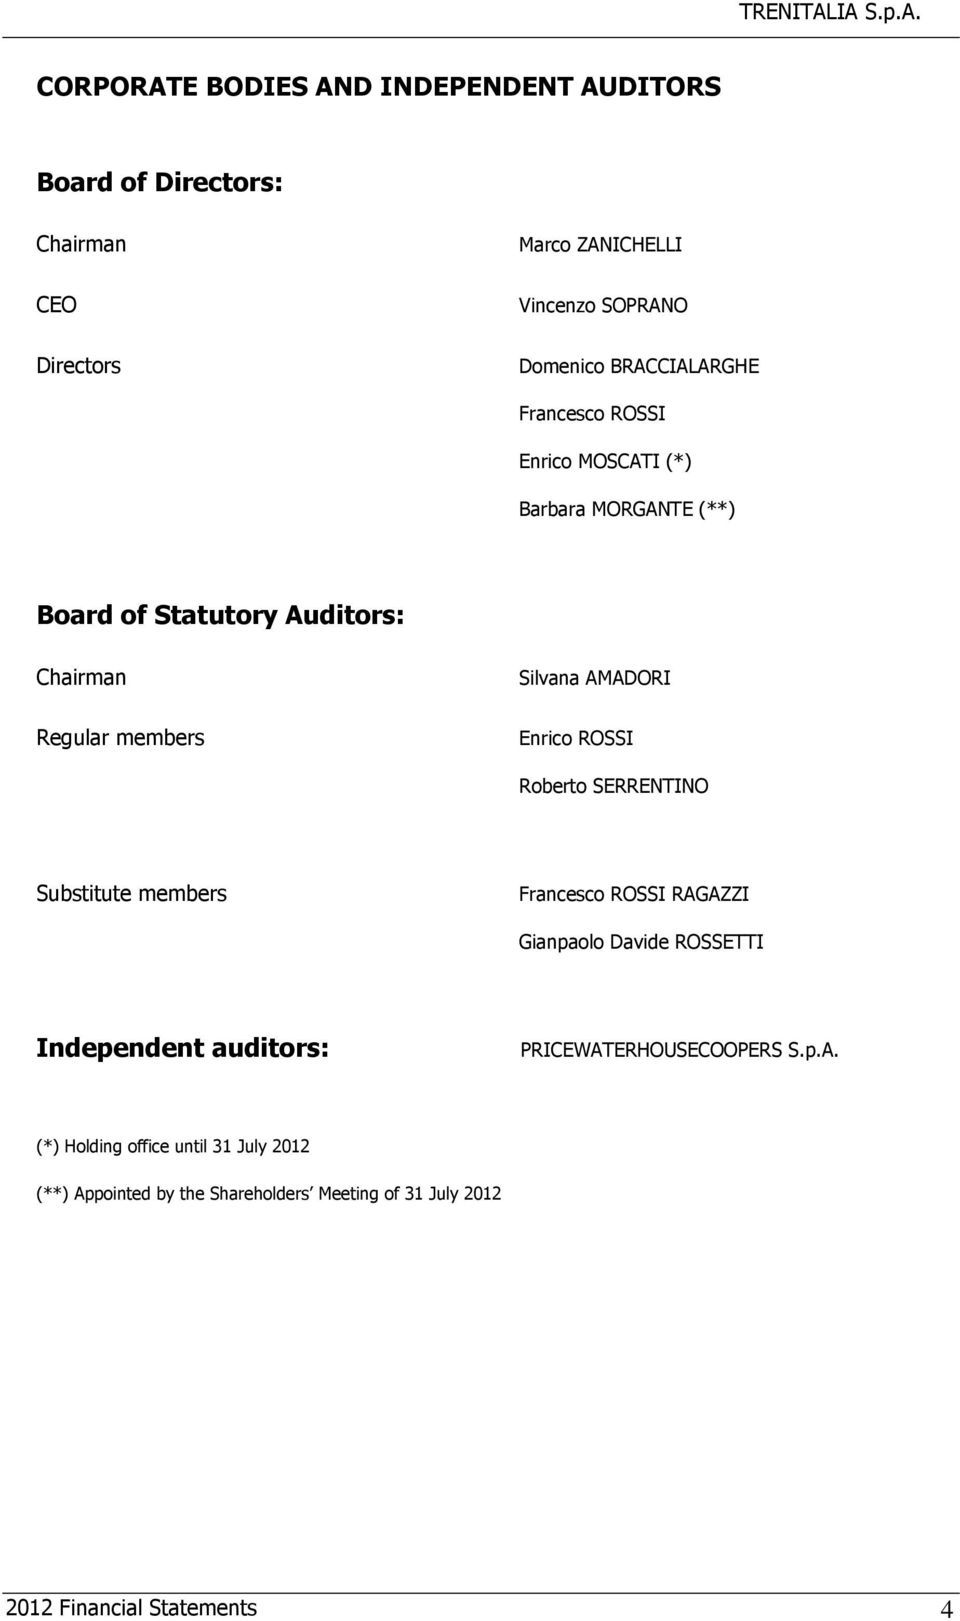 members Enrico ROSSI Roberto SERRENTINO Substitute members Francesco ROSSI RAGAZZI Gianpaolo Davide ROSSETTI Independent auditors: